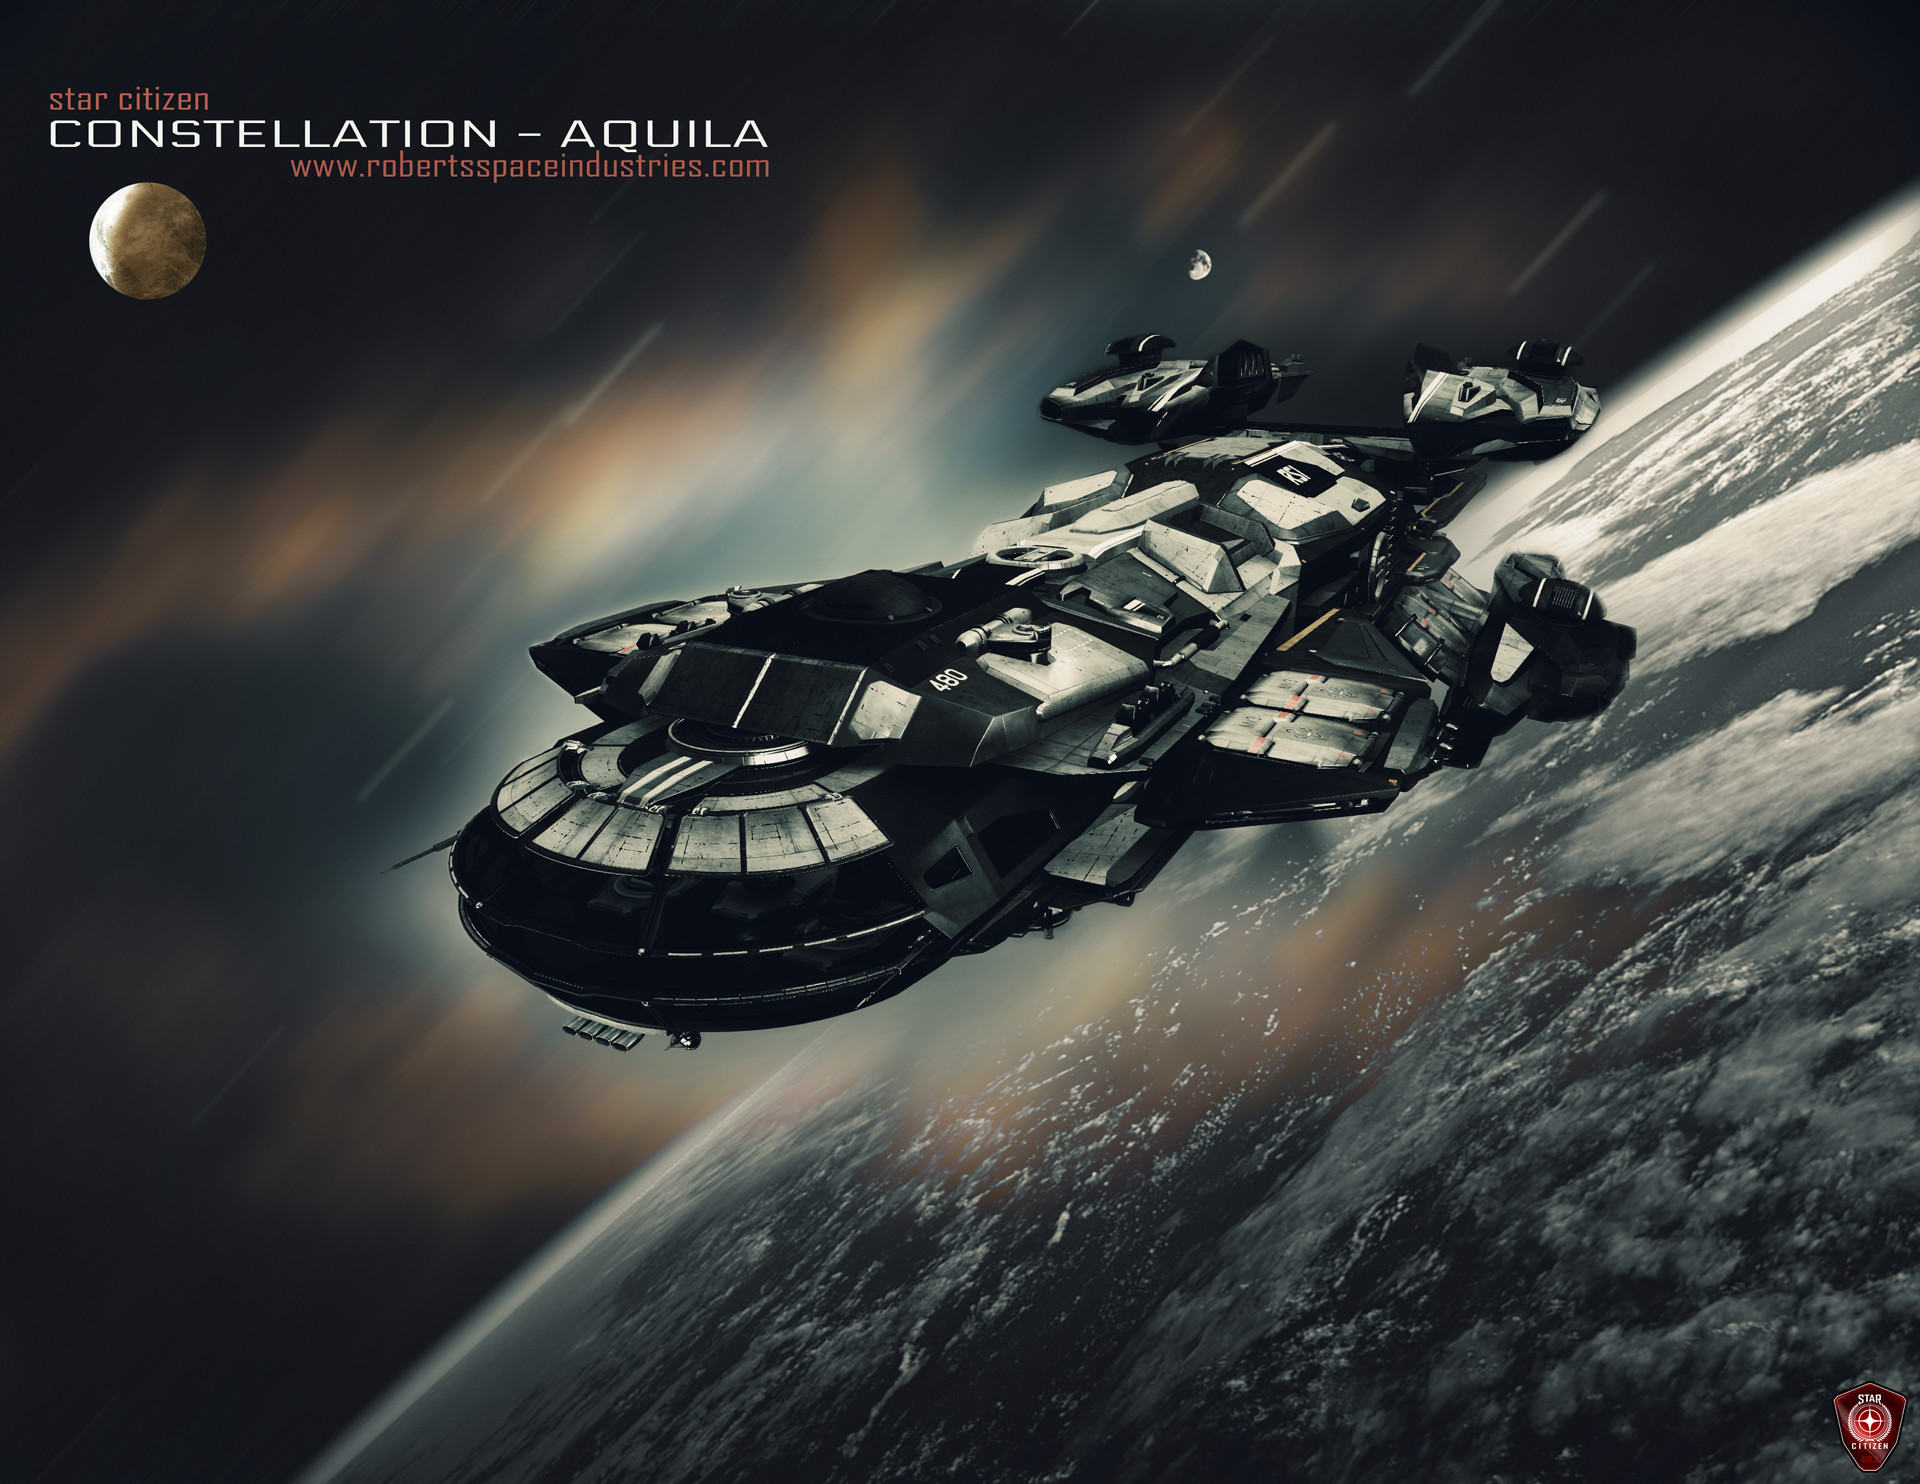 Here's a couple wallpapers. Constellation – Aquila Ozwg44f.png